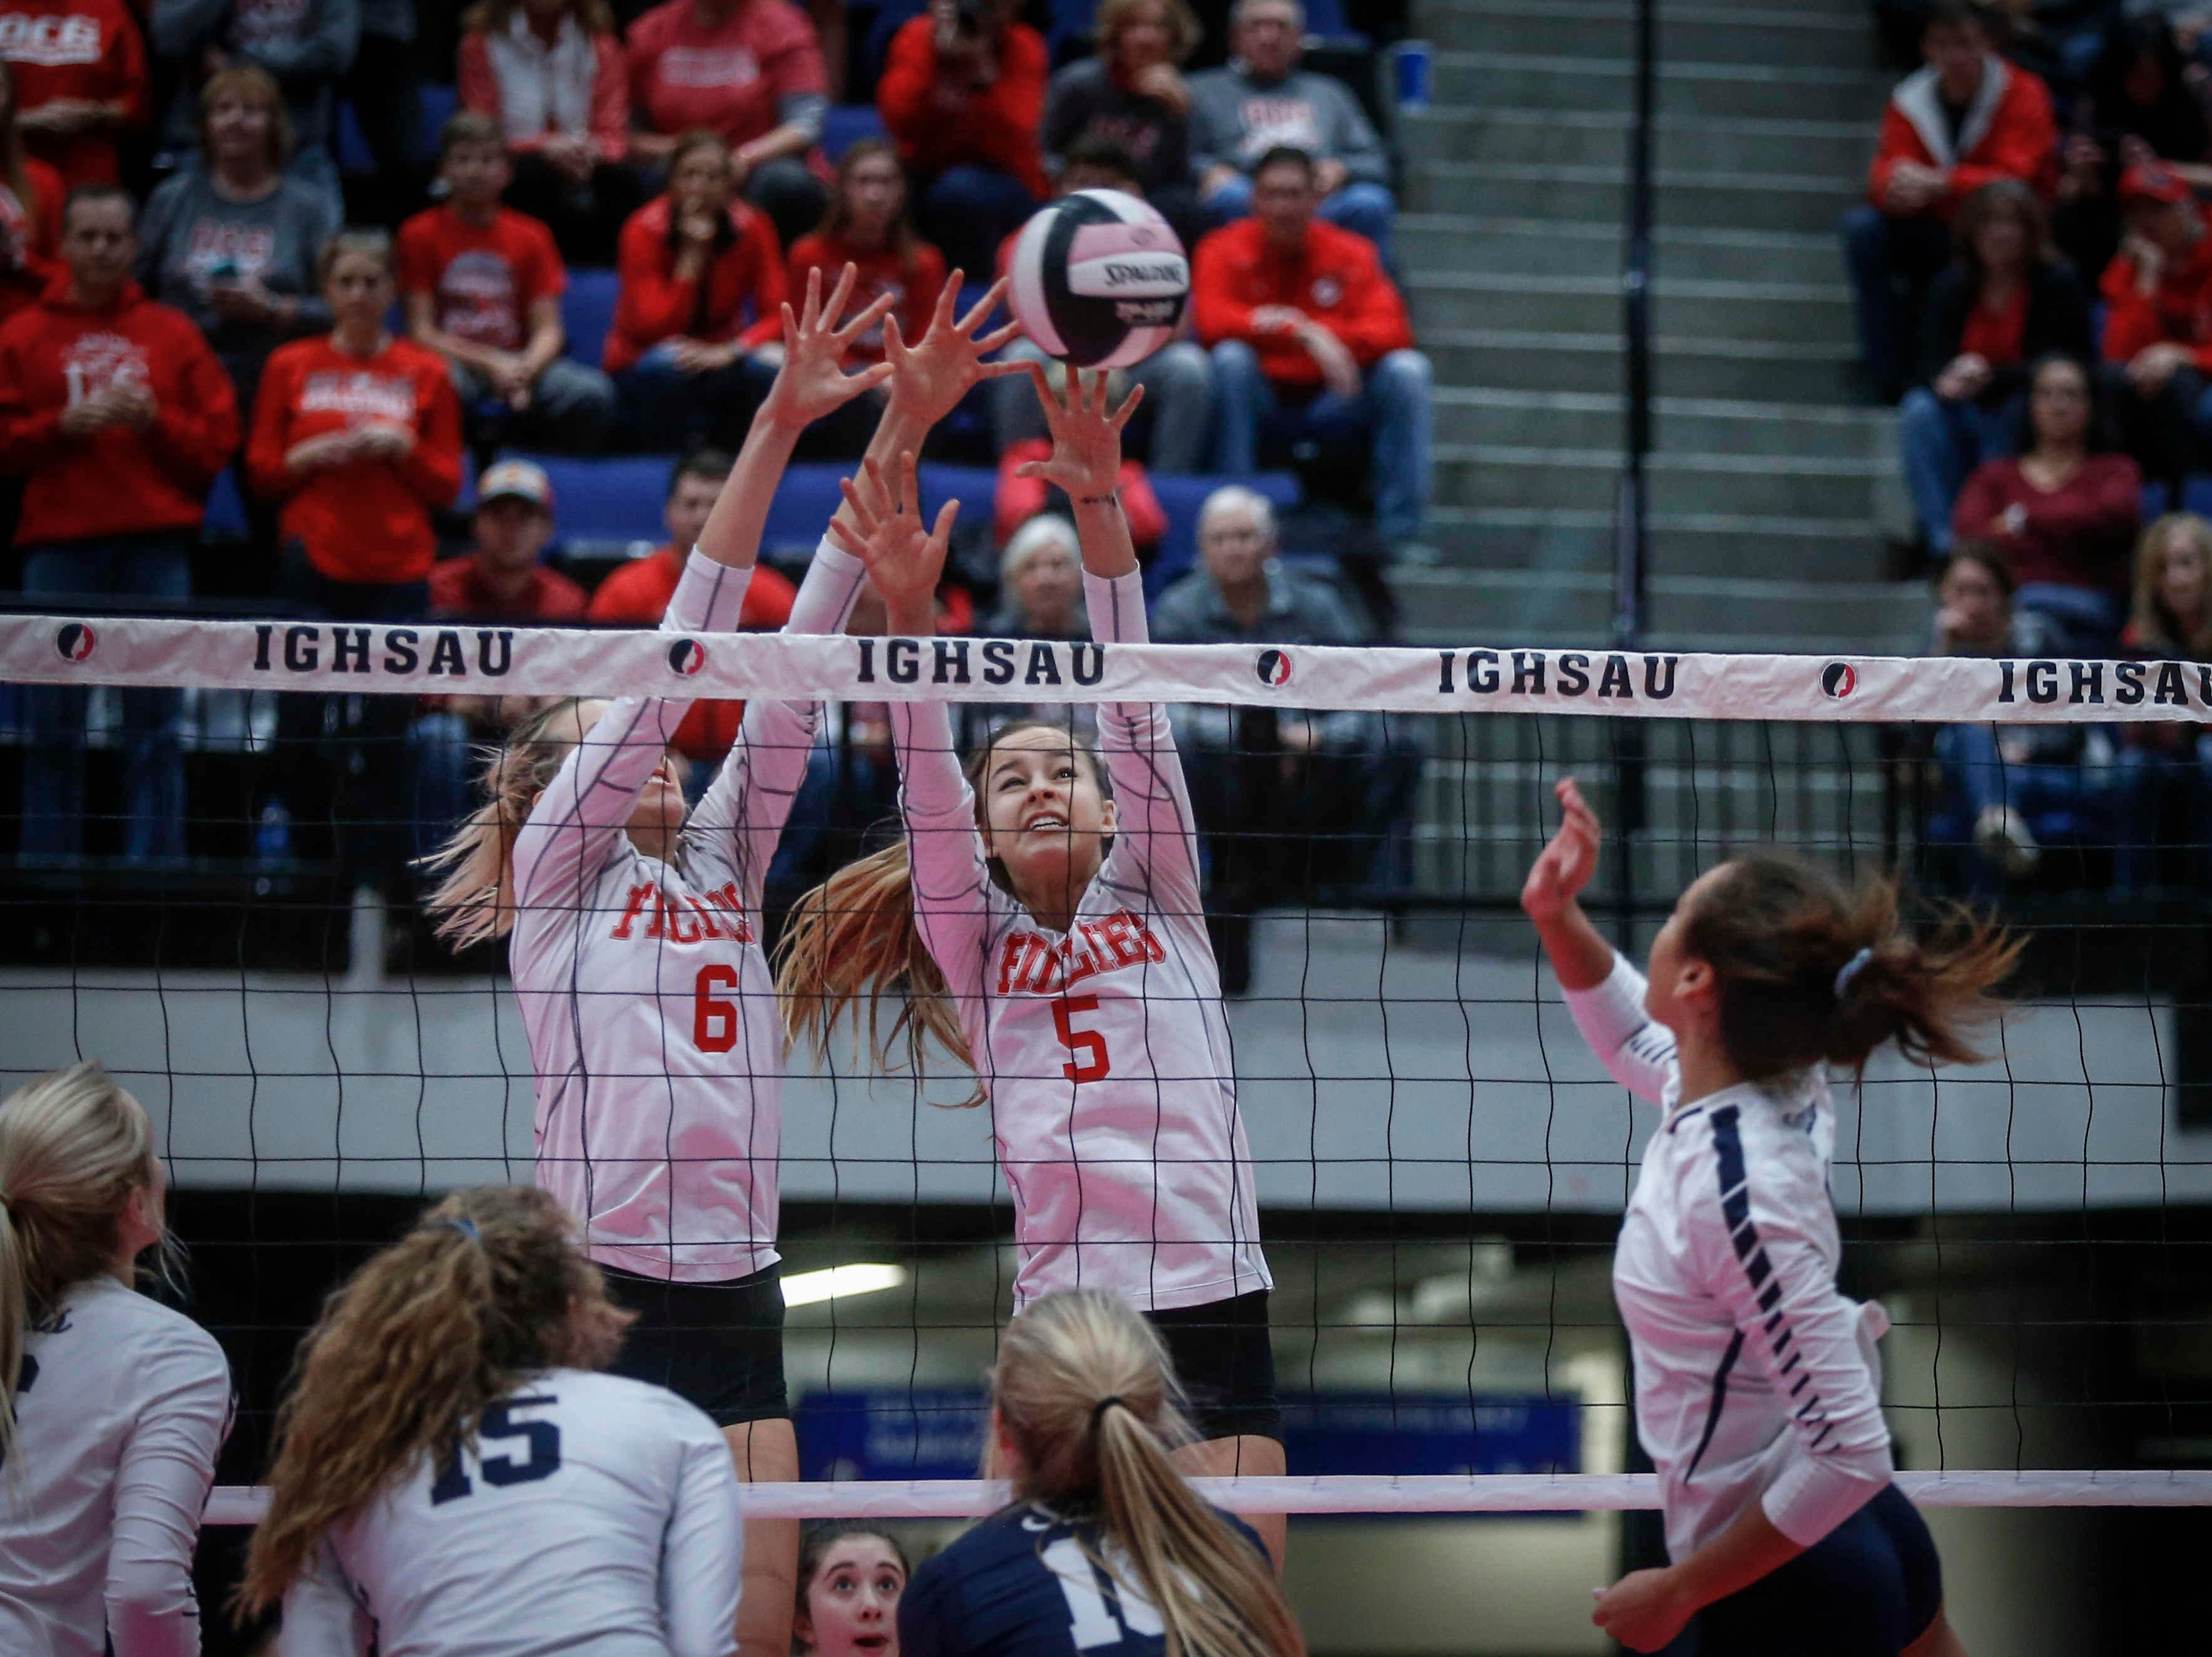 Dallas Center-Grimes seniors Tiffany Denger, left, and Hannah Ashley reach for the ball against Cedar Rapids Xavier in Class 4A during the 2018 Iowa High School state volleyball tournament on Thursday, Nov. 8, 2018, in Cedar Rapids.